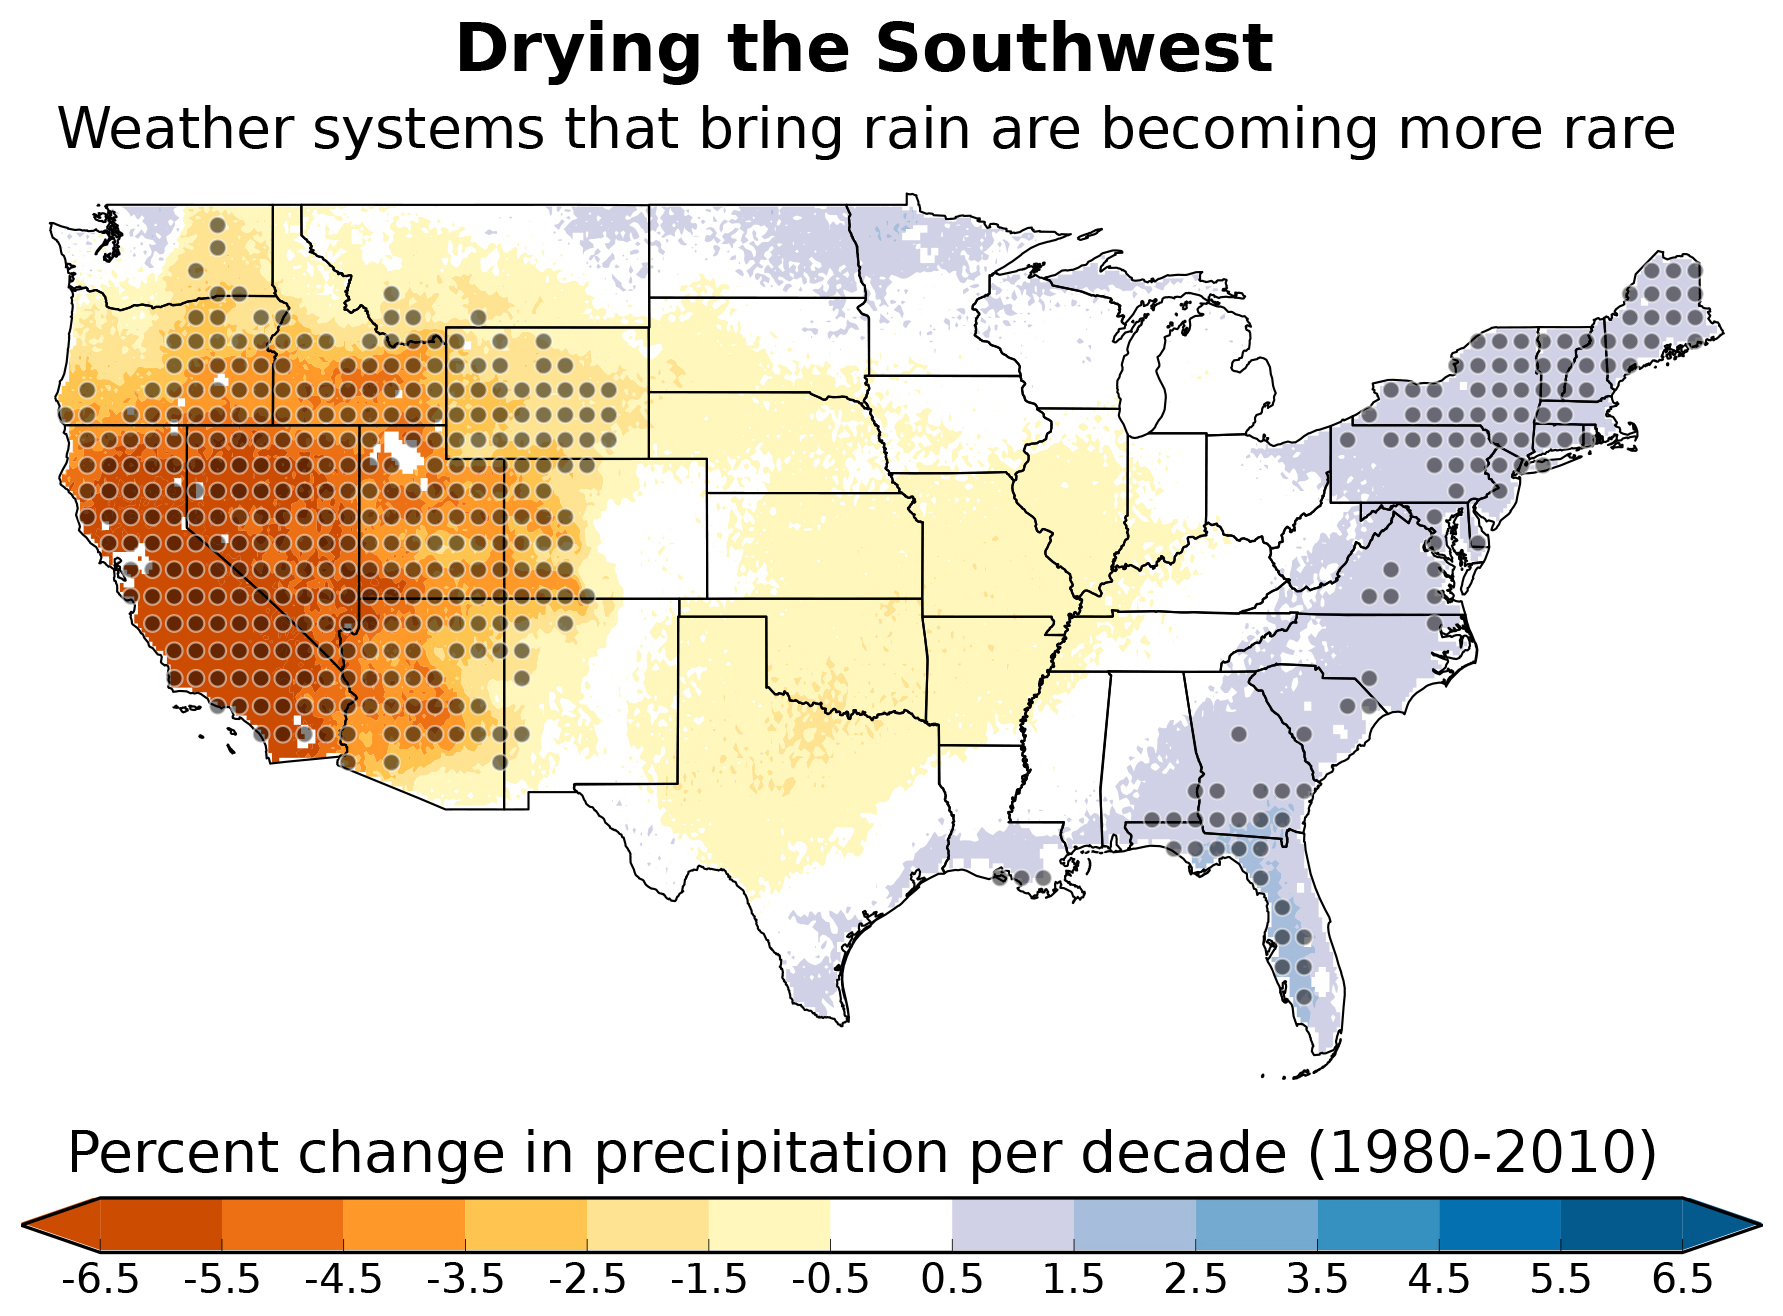 Southwest dries as wet weather systems become more rare